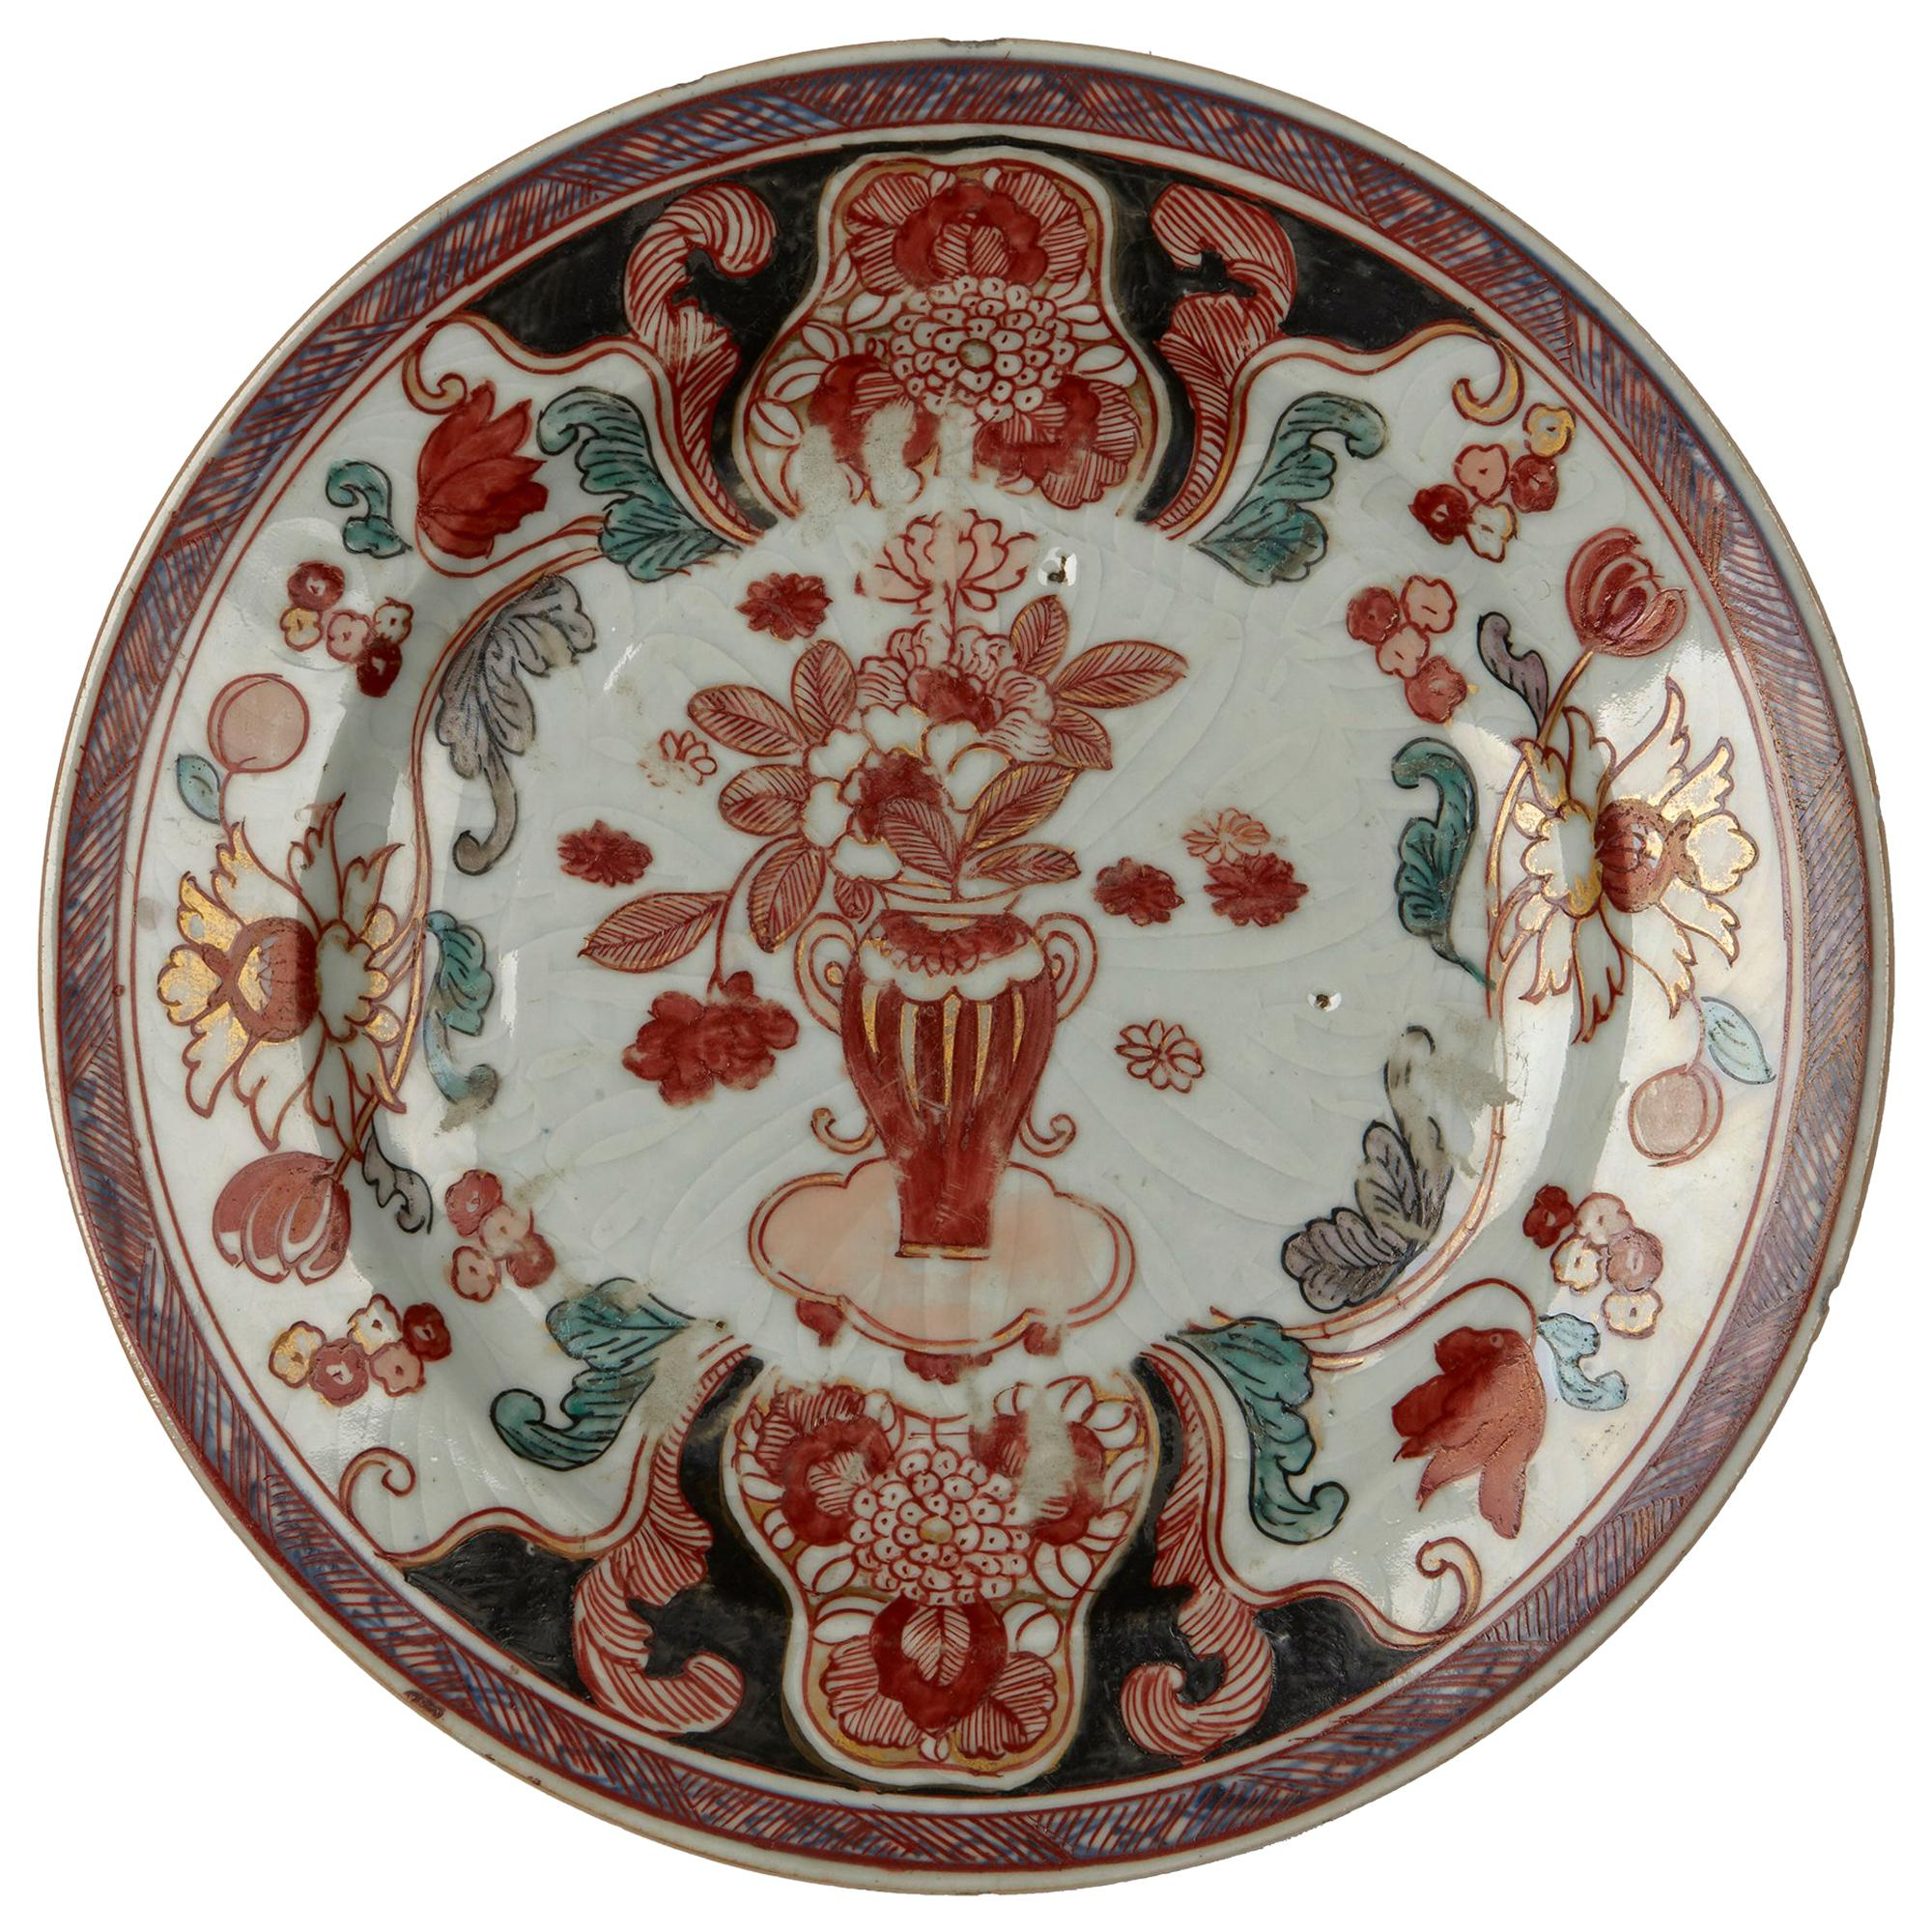 Chinese Qianlong Clobbered Moulded Porcelain Plate, 18th Century